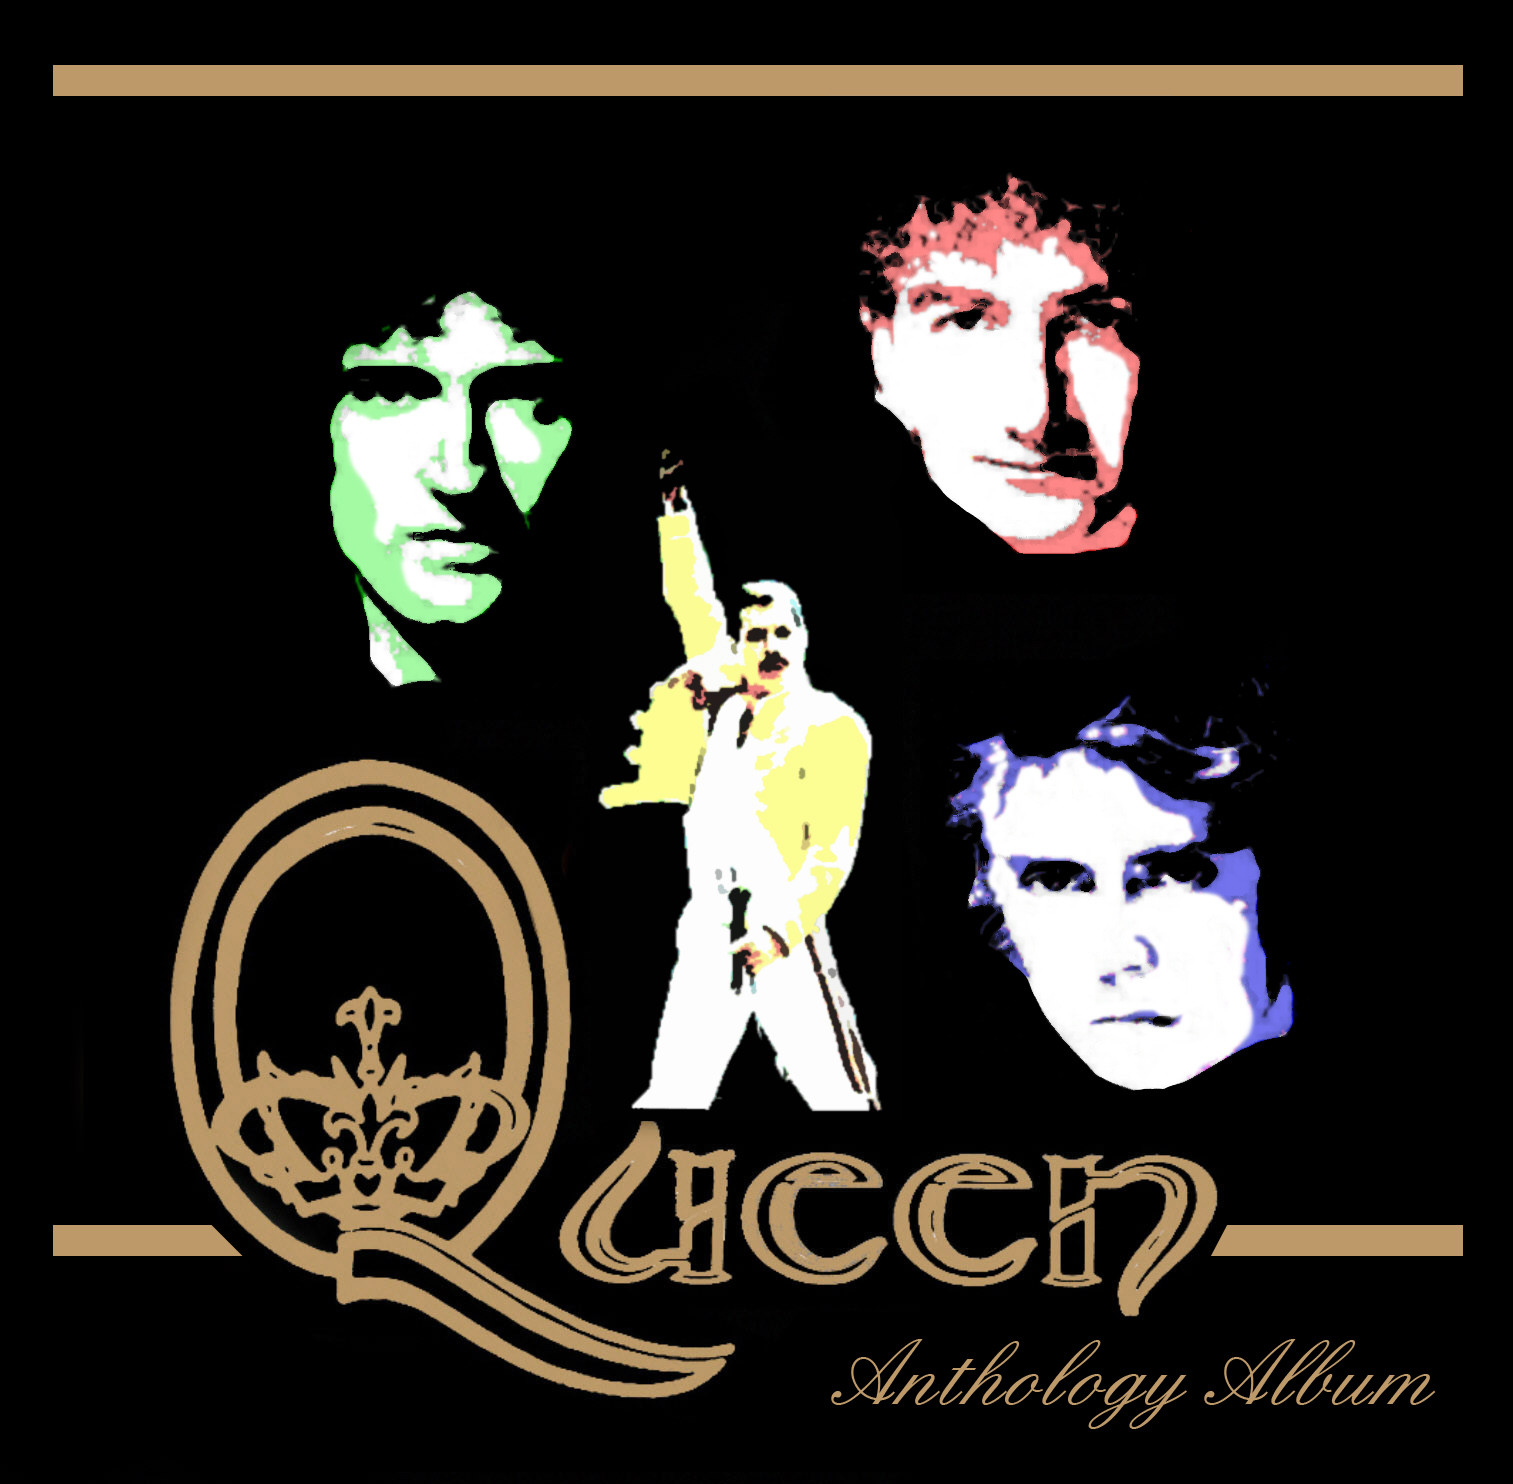 ArtStation - Queen Anthology Album - Cover, AnnA B